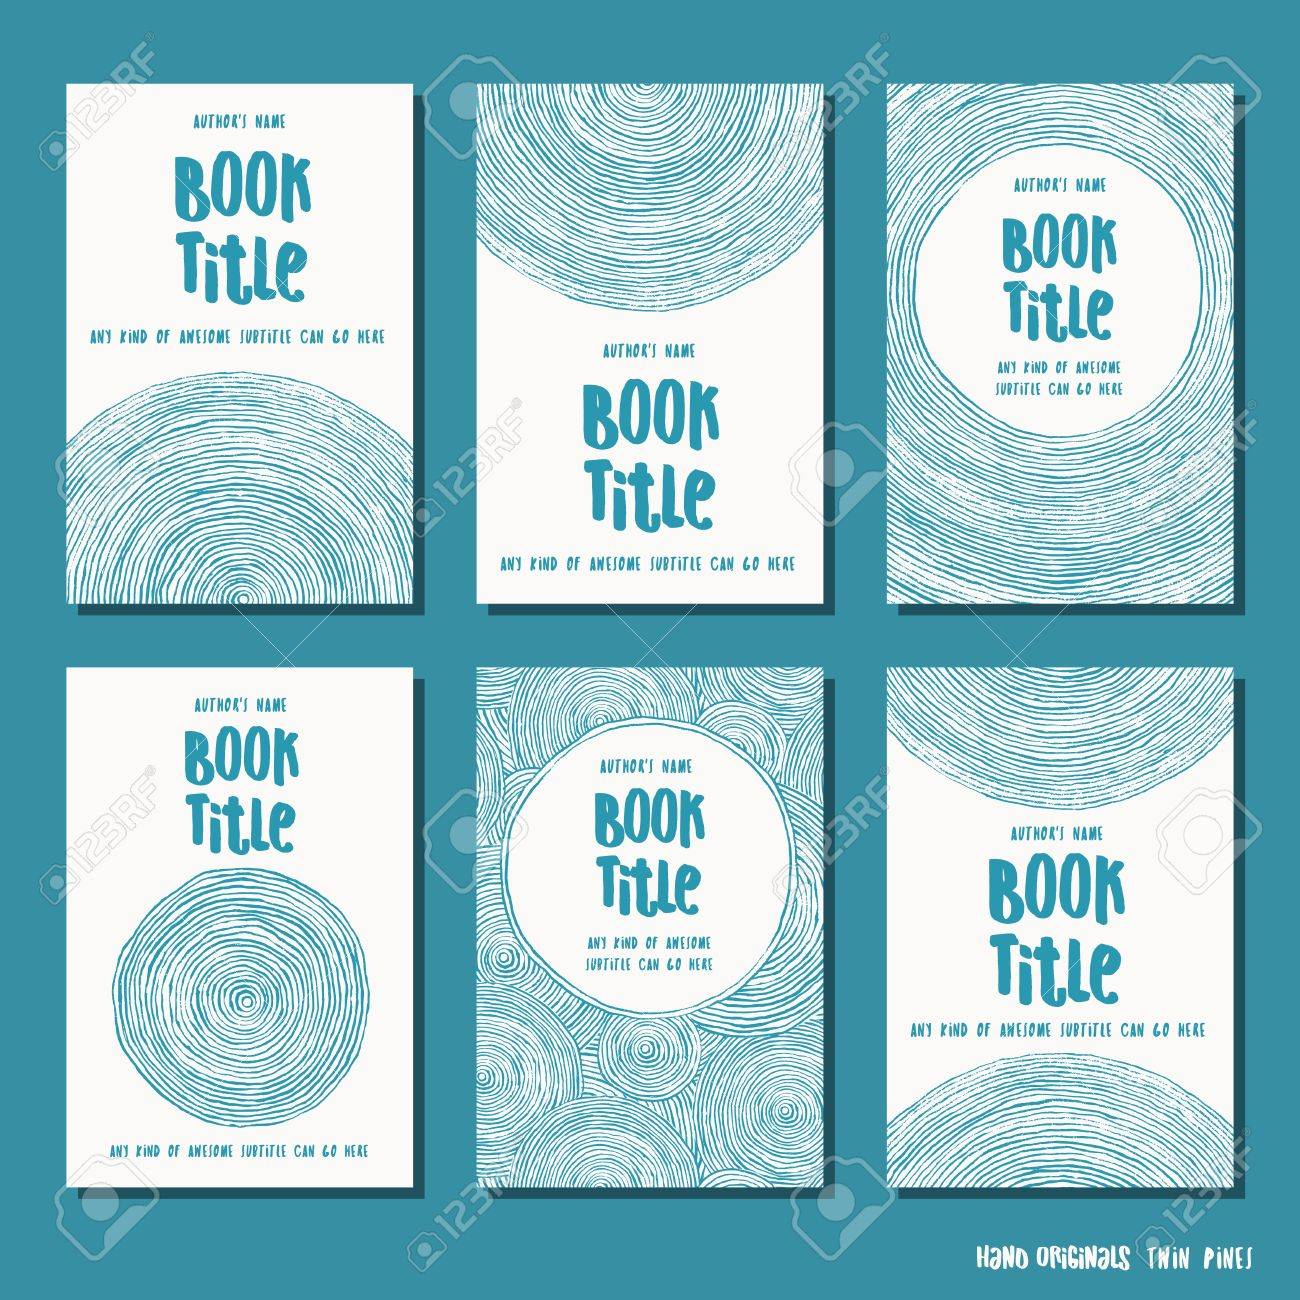 Abstract brush circle - set of six hand drawn book cover templates - 83019114